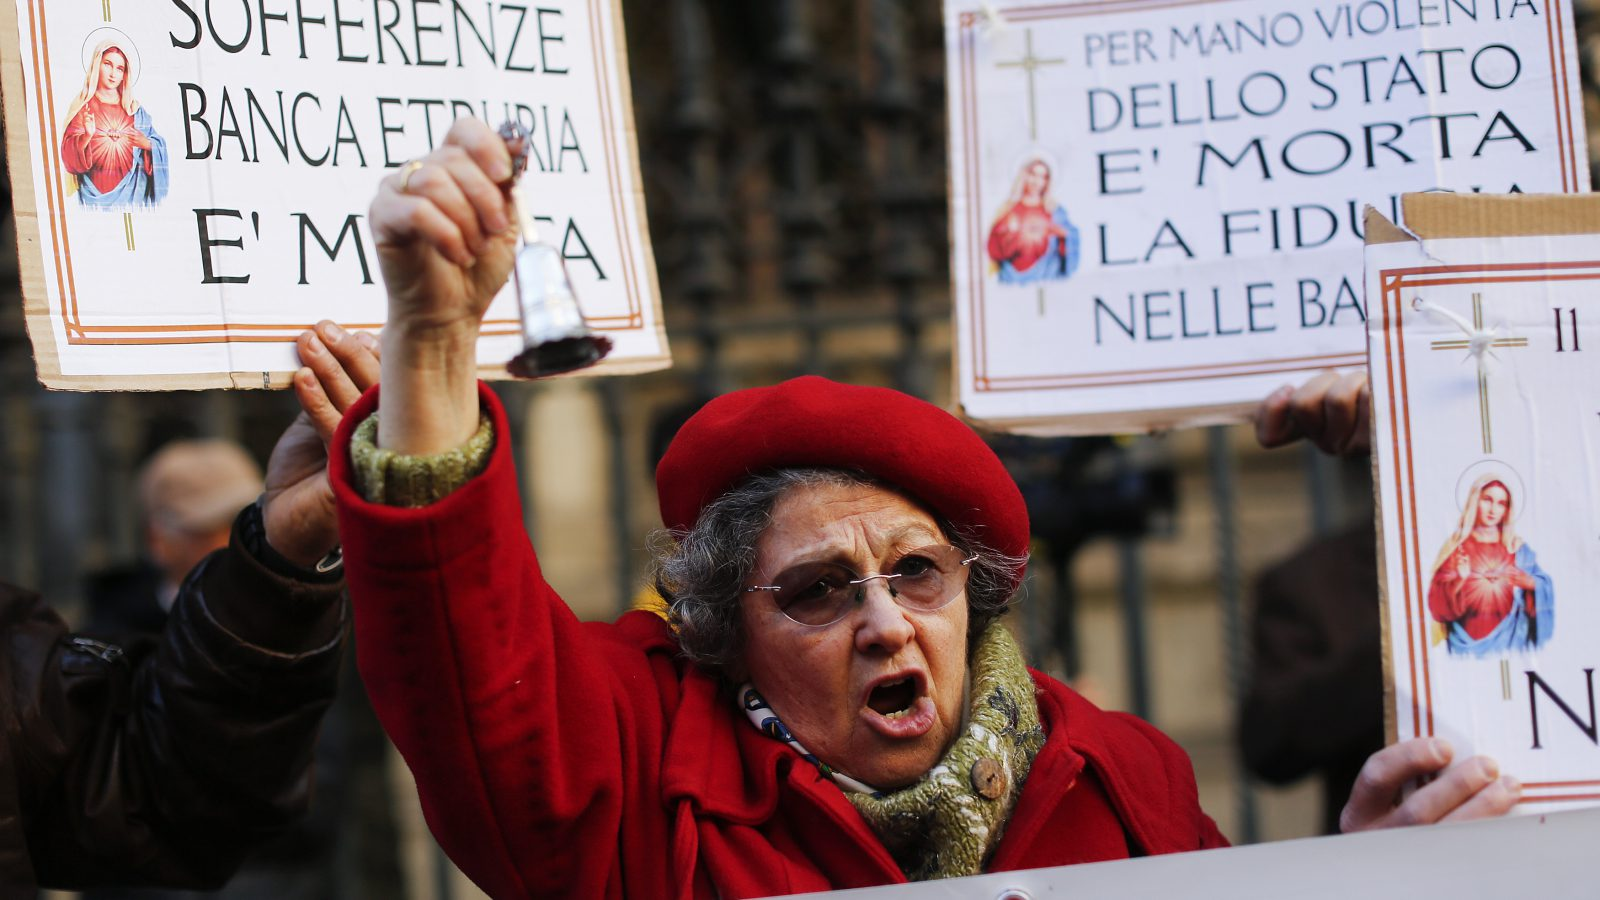 A woman reacts in front of the Bank of Italy during a protest after a bank rescue last month left bitter families marooned in Rome, Italy December 22, 2015. REUTERS/Alessandro Bianchi - RTX1ZR3F